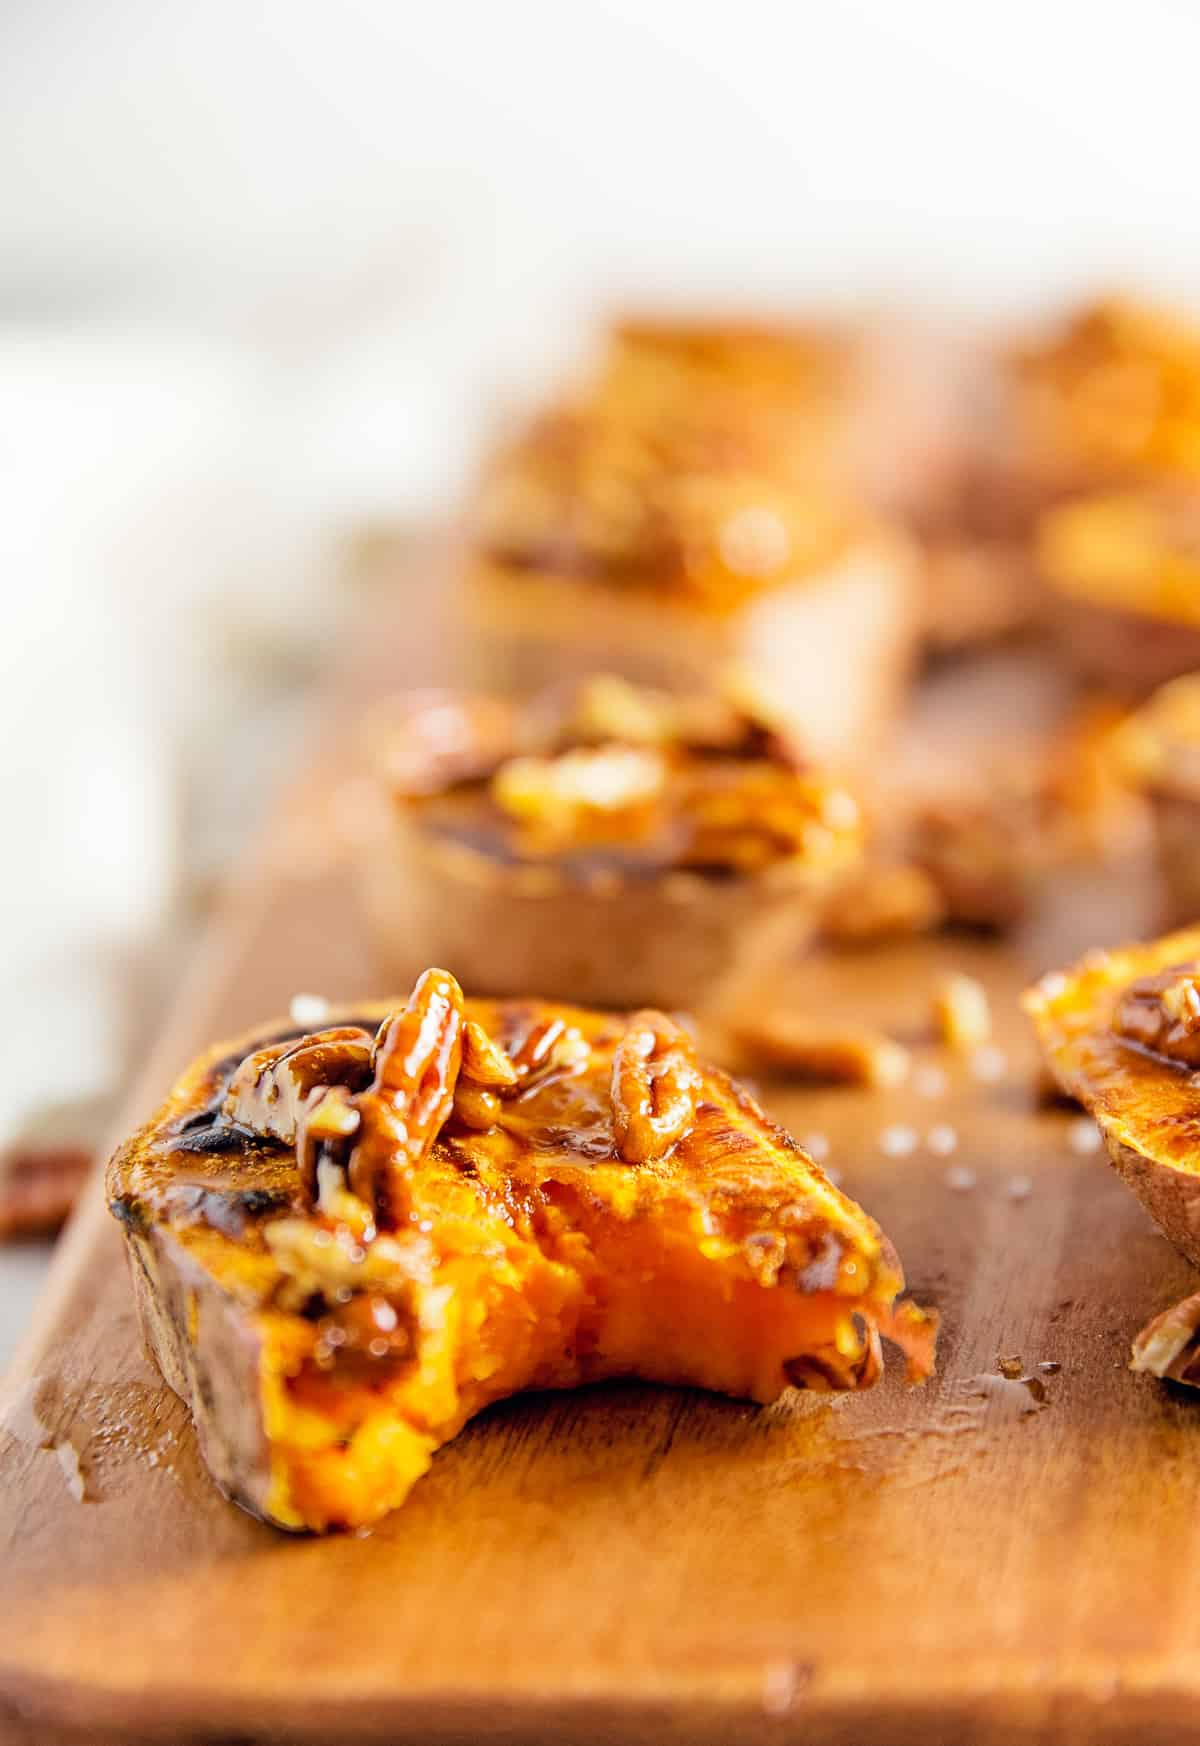 glazed pecan sweet potato rounds, sweet potatoes, recipe, vegan, vegetarian, whole food plant based, wfpb, gluten free, oil free, refined sugar free, no oil, no refined sugar, no dairy, dinner, lunch, side, appetizer, dinner party, entertaining, simple, healthy